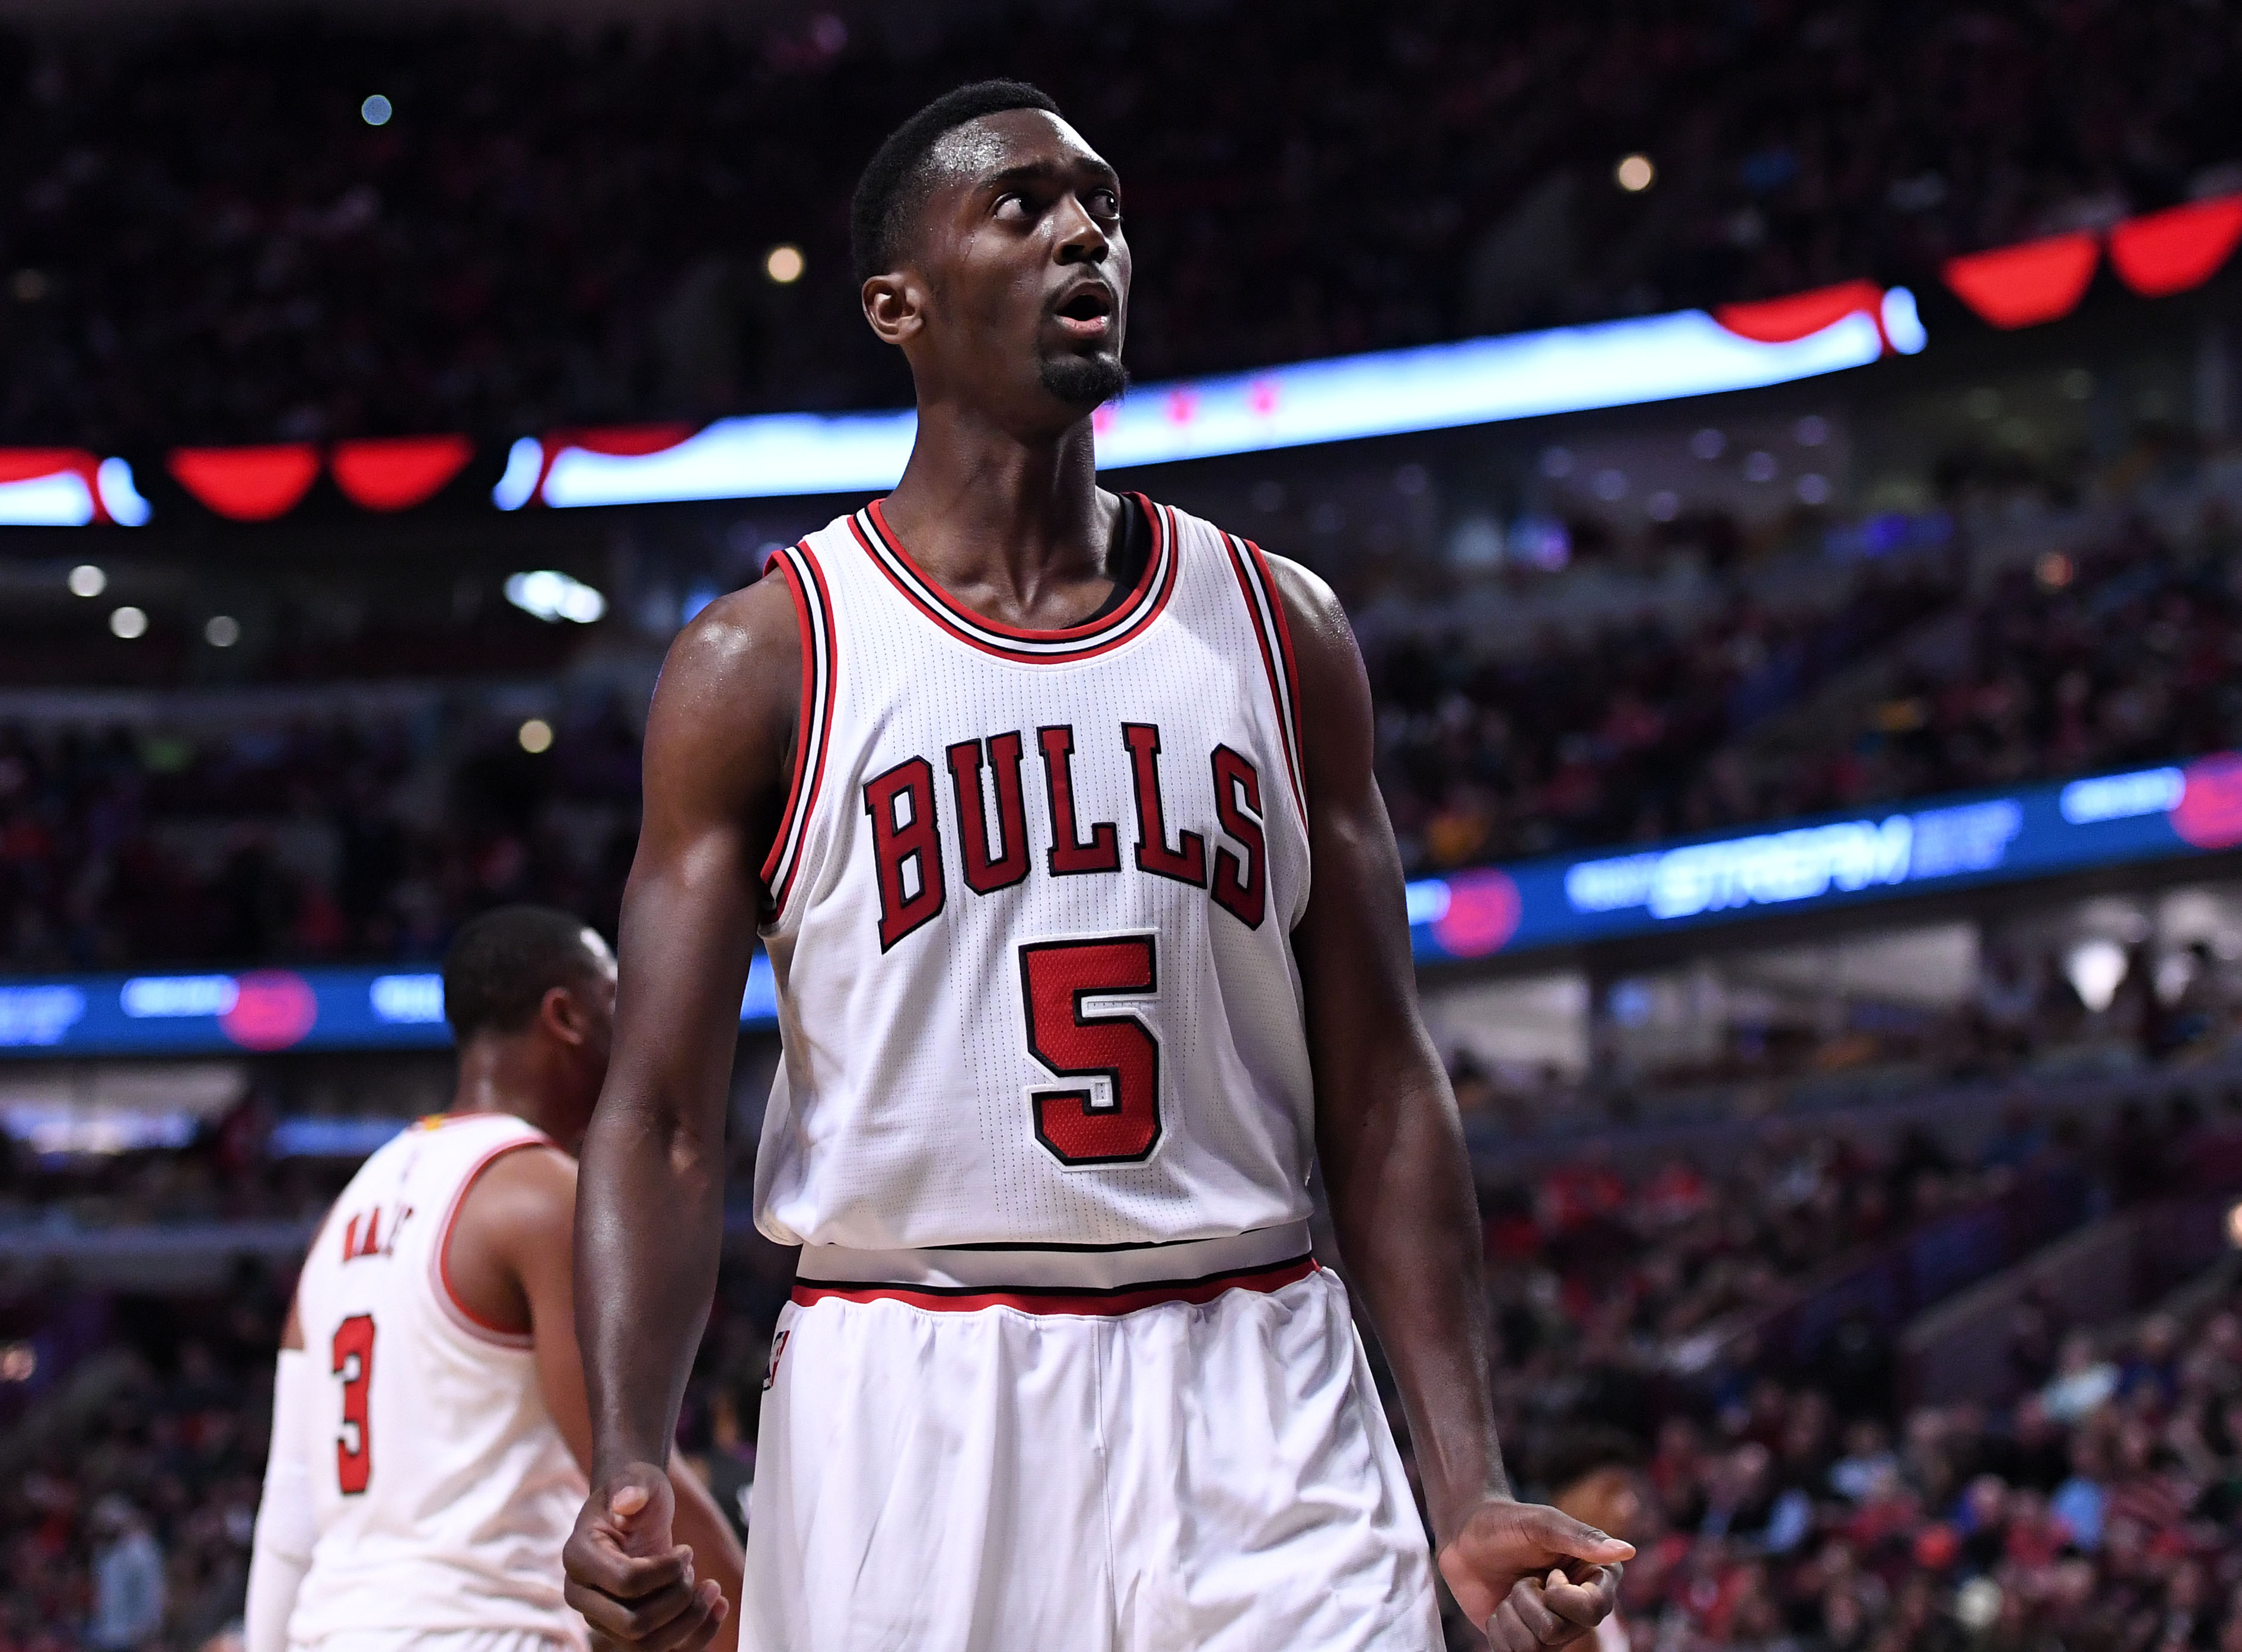 9918356-nba-los-angeles-clippers-at-chicago-bulls